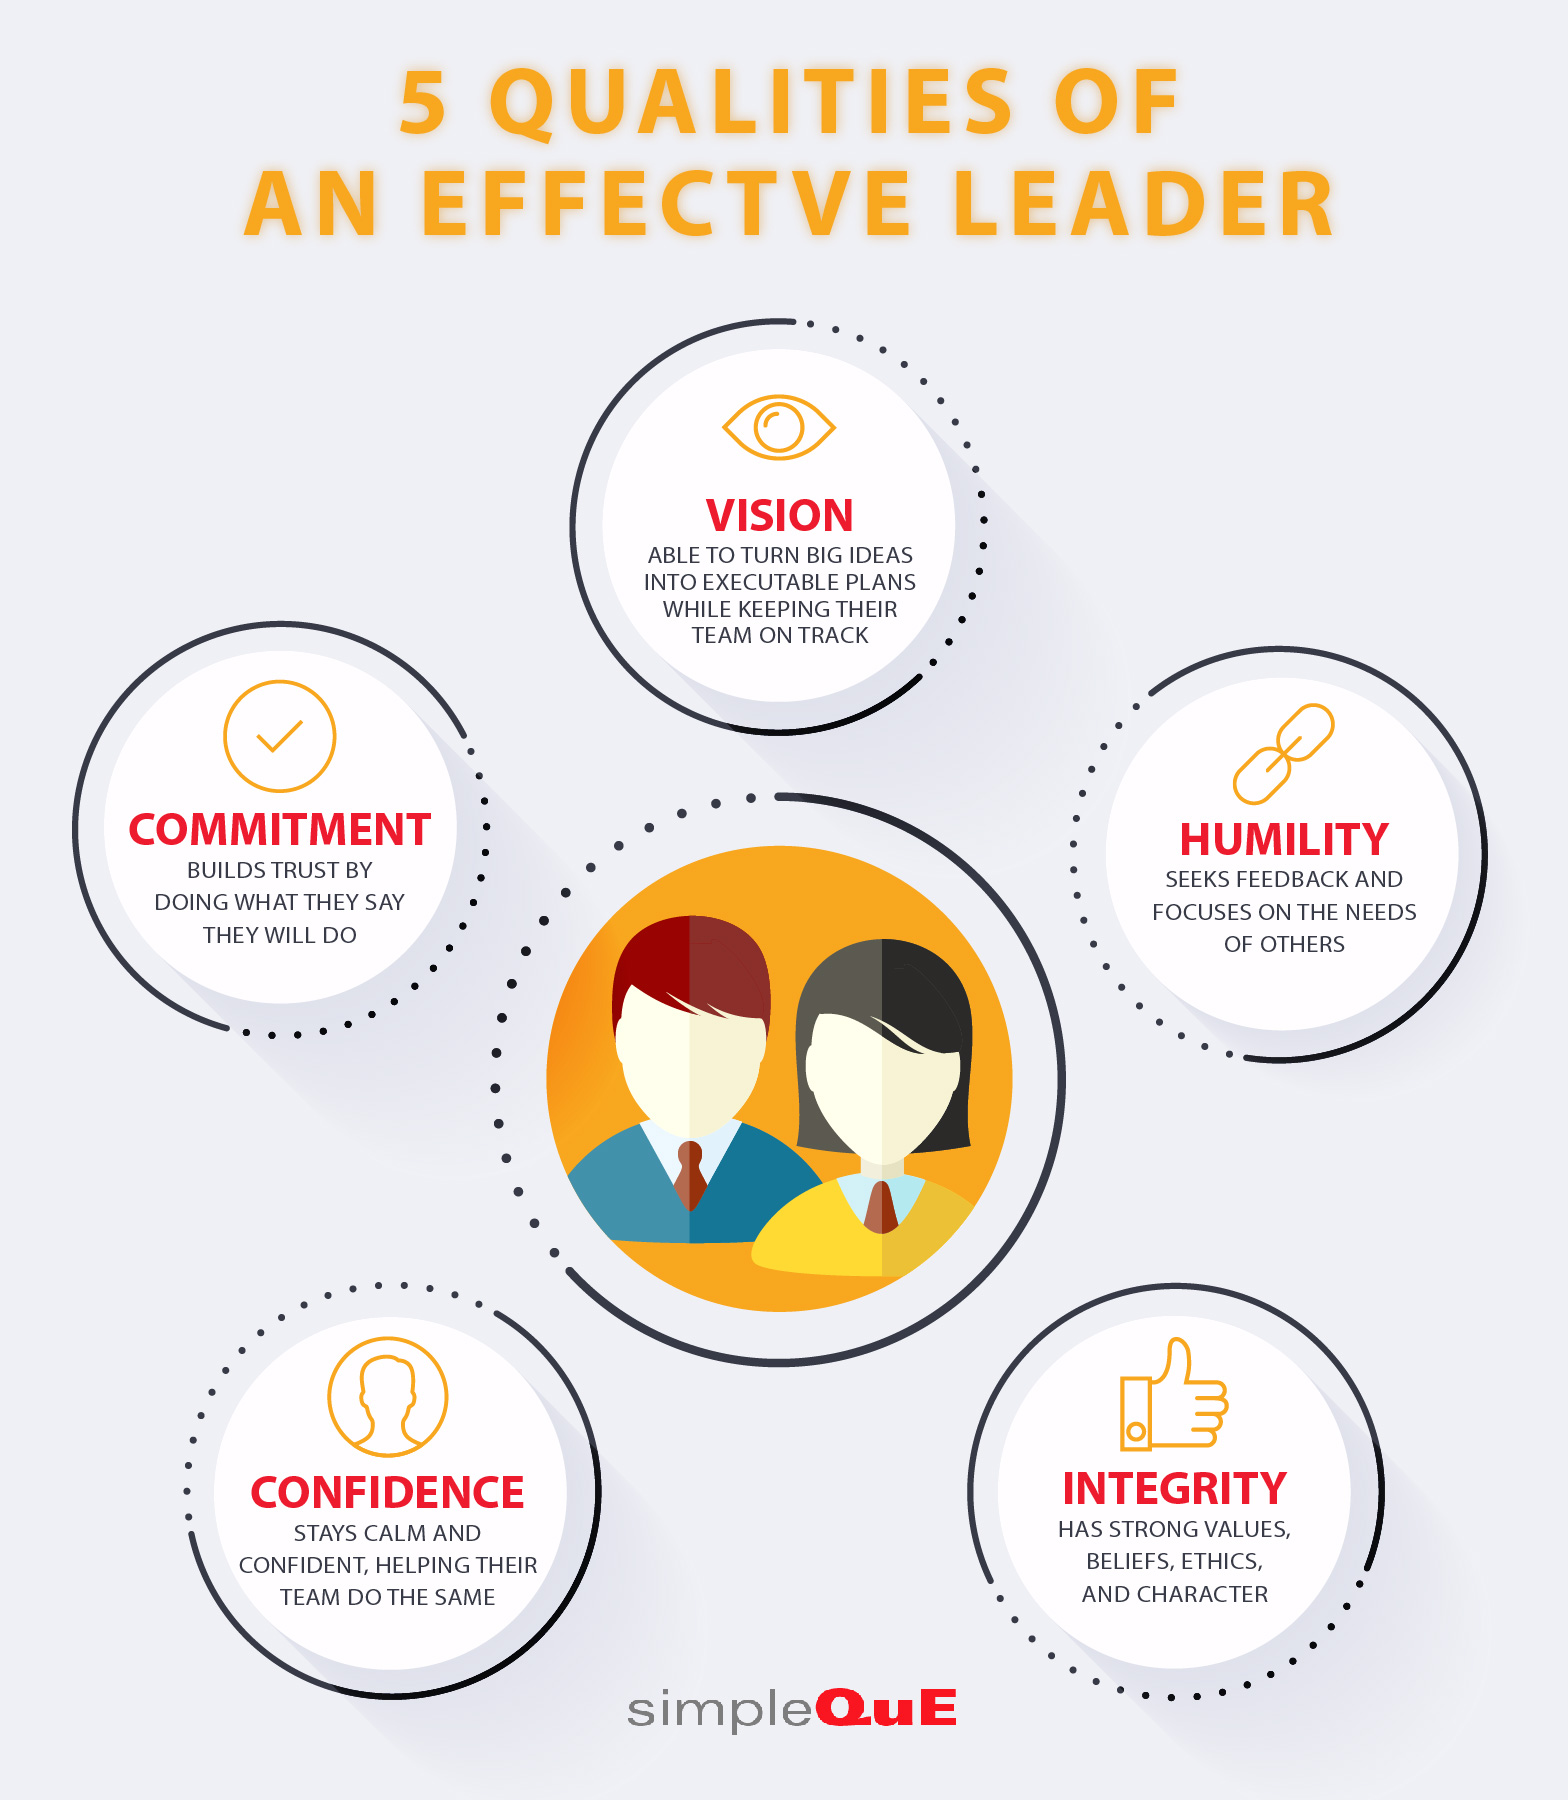 5 Qualities Of An Effective Leader